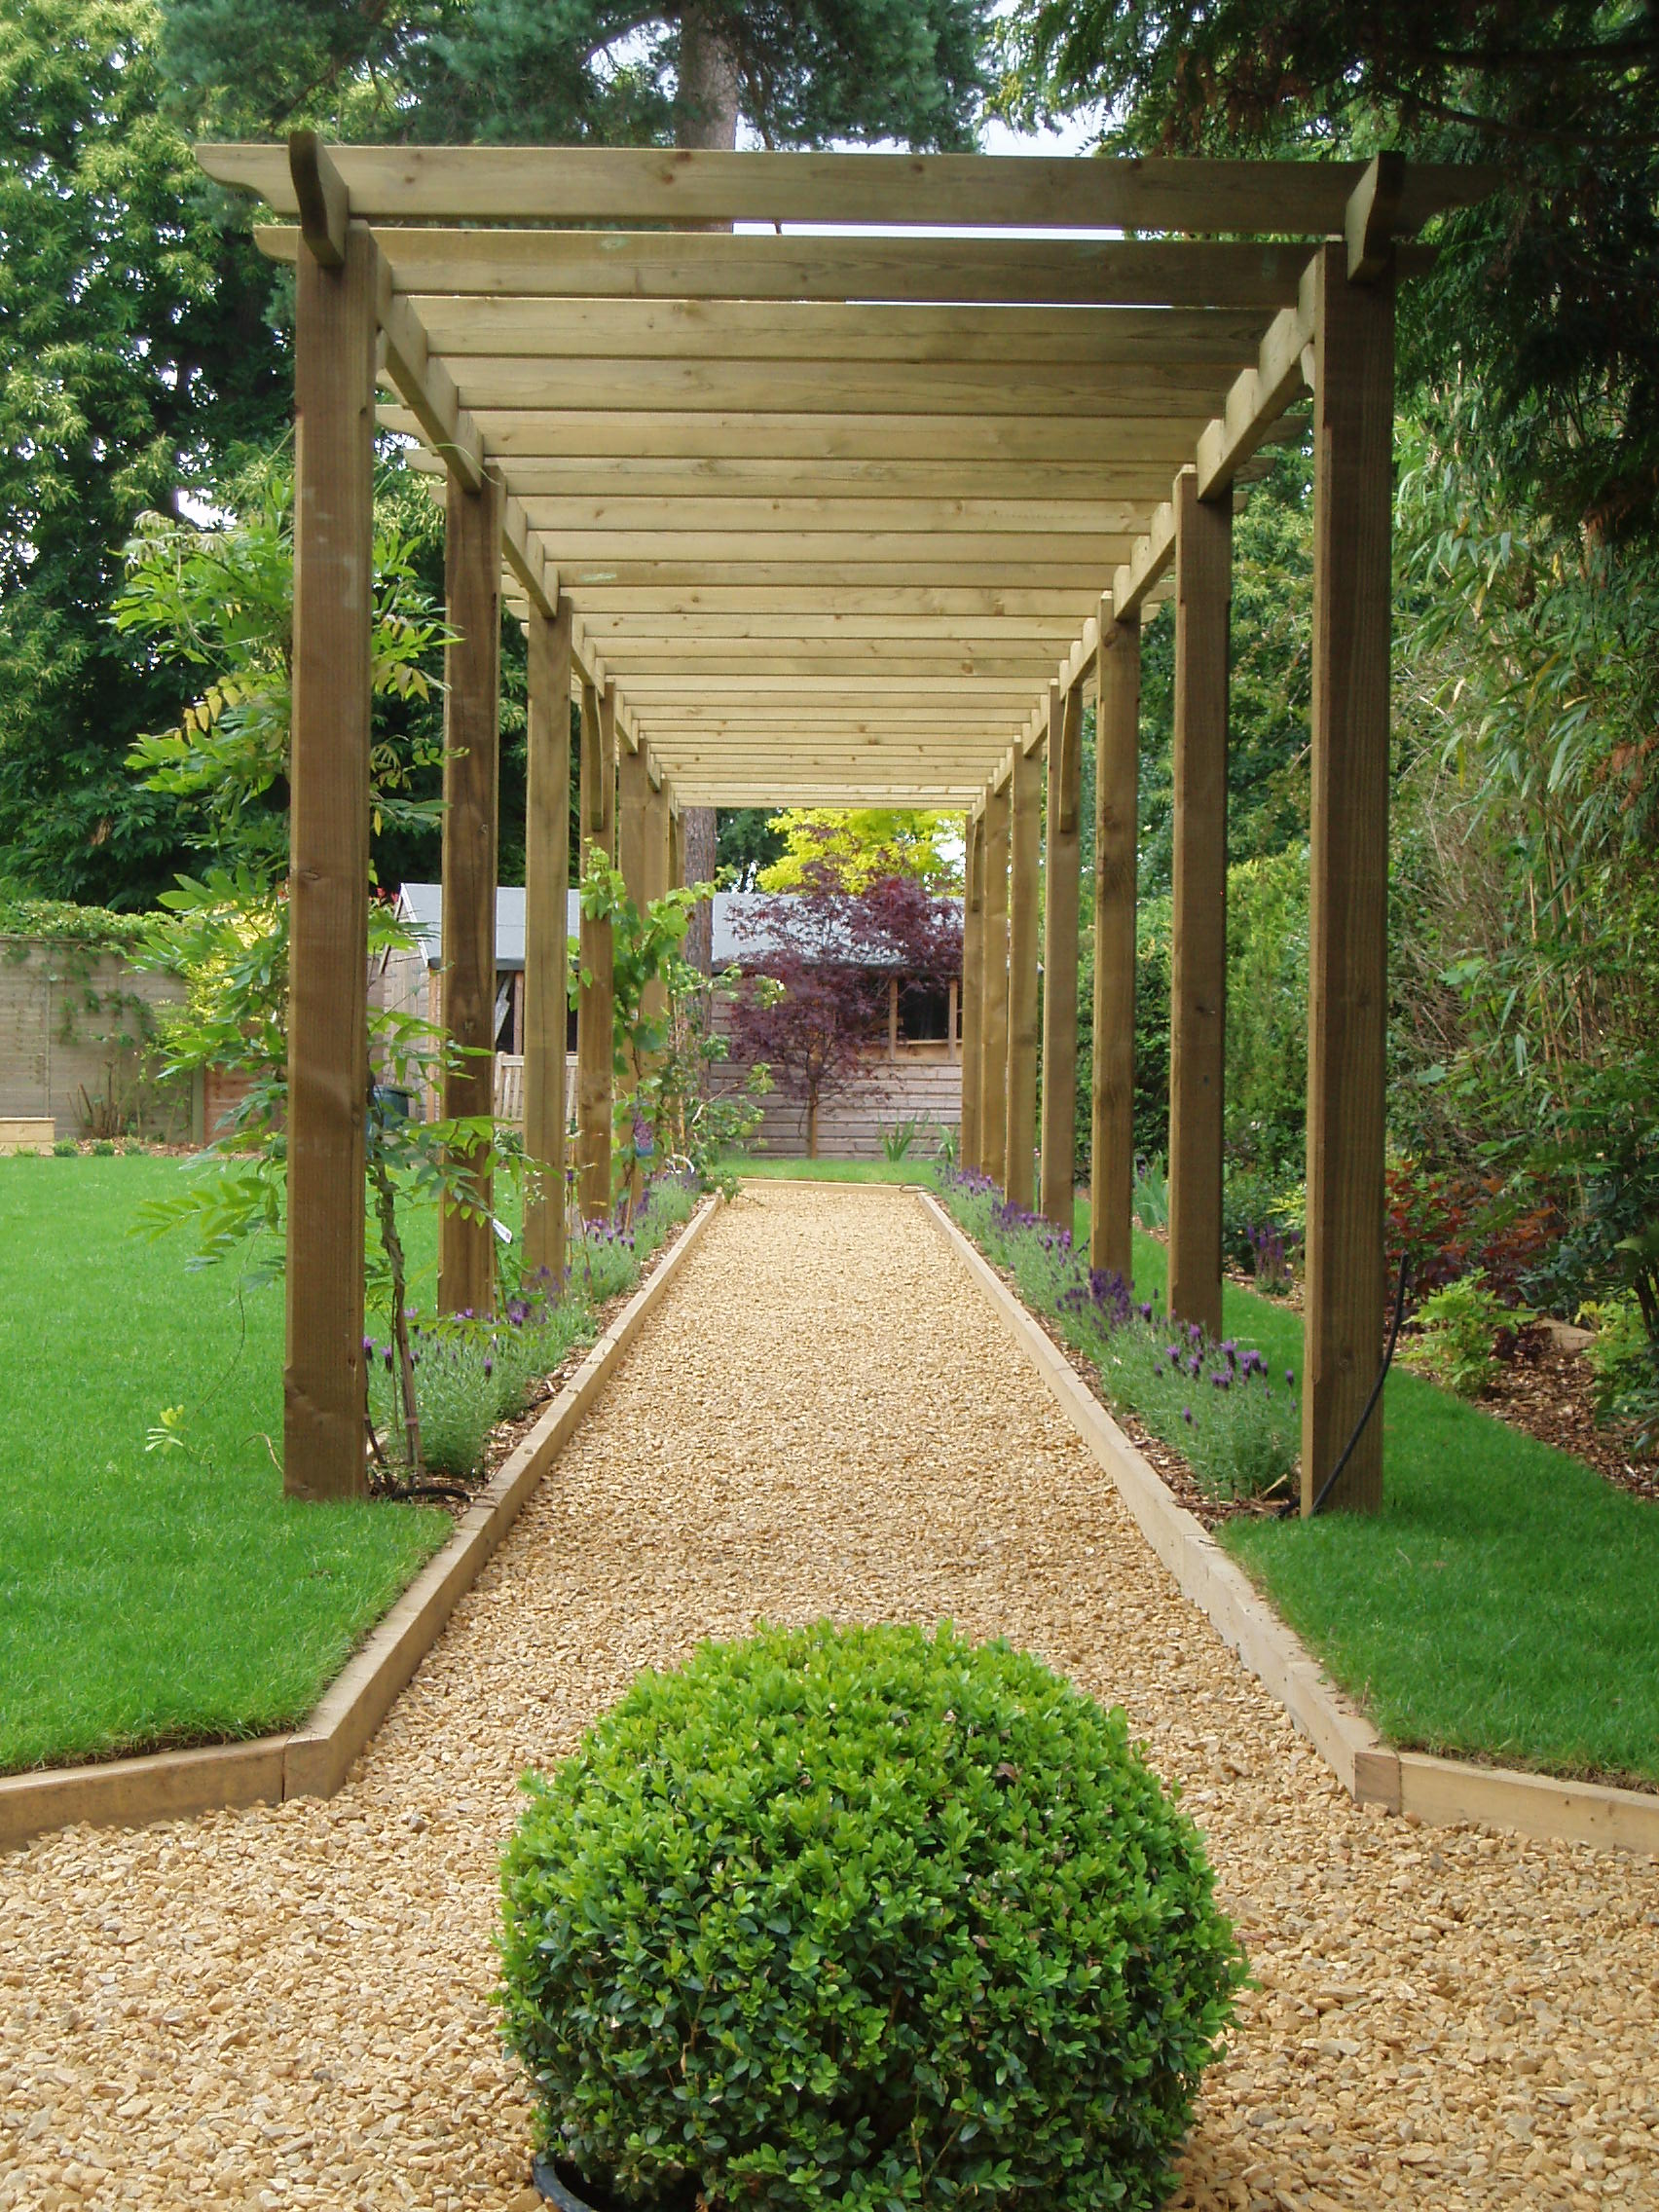 Adl timber structures pergolas garden landscaping for Garden design kits